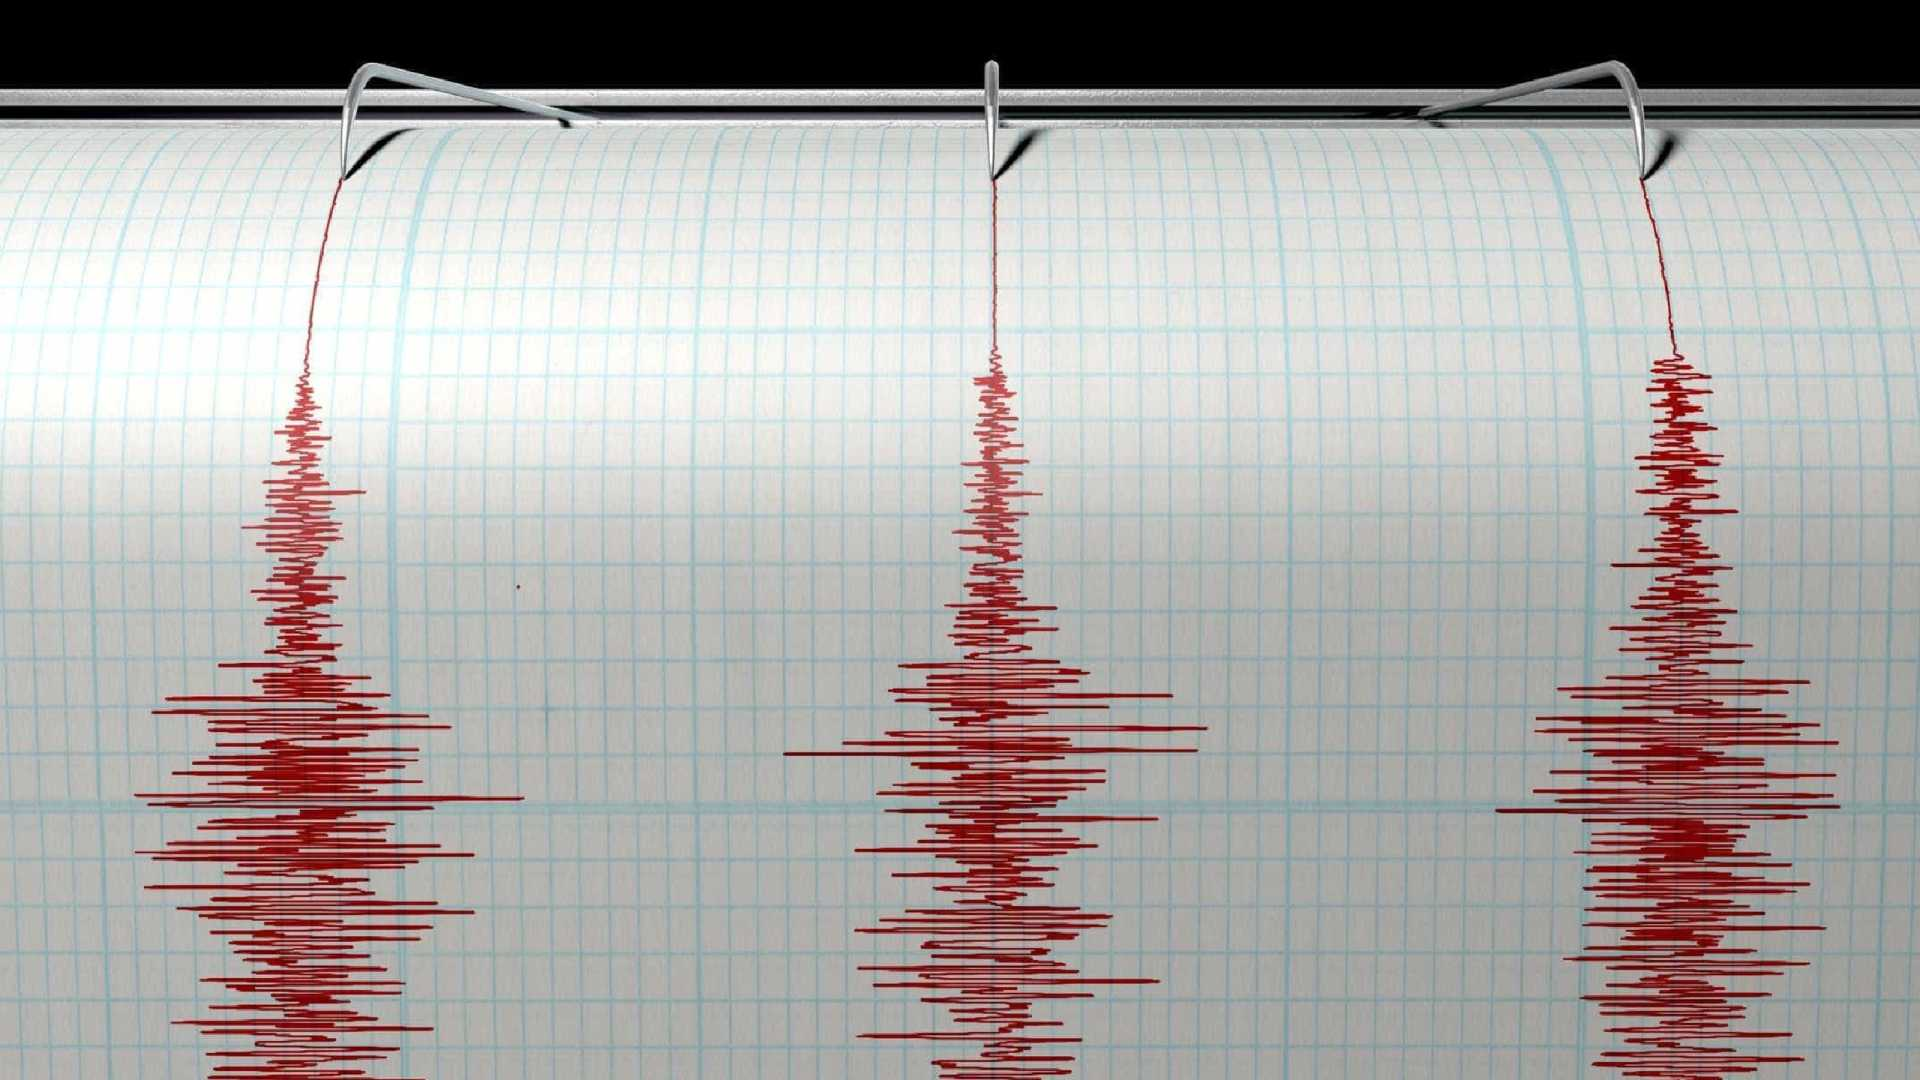 Sismo de 5,9 abala norte do Japão